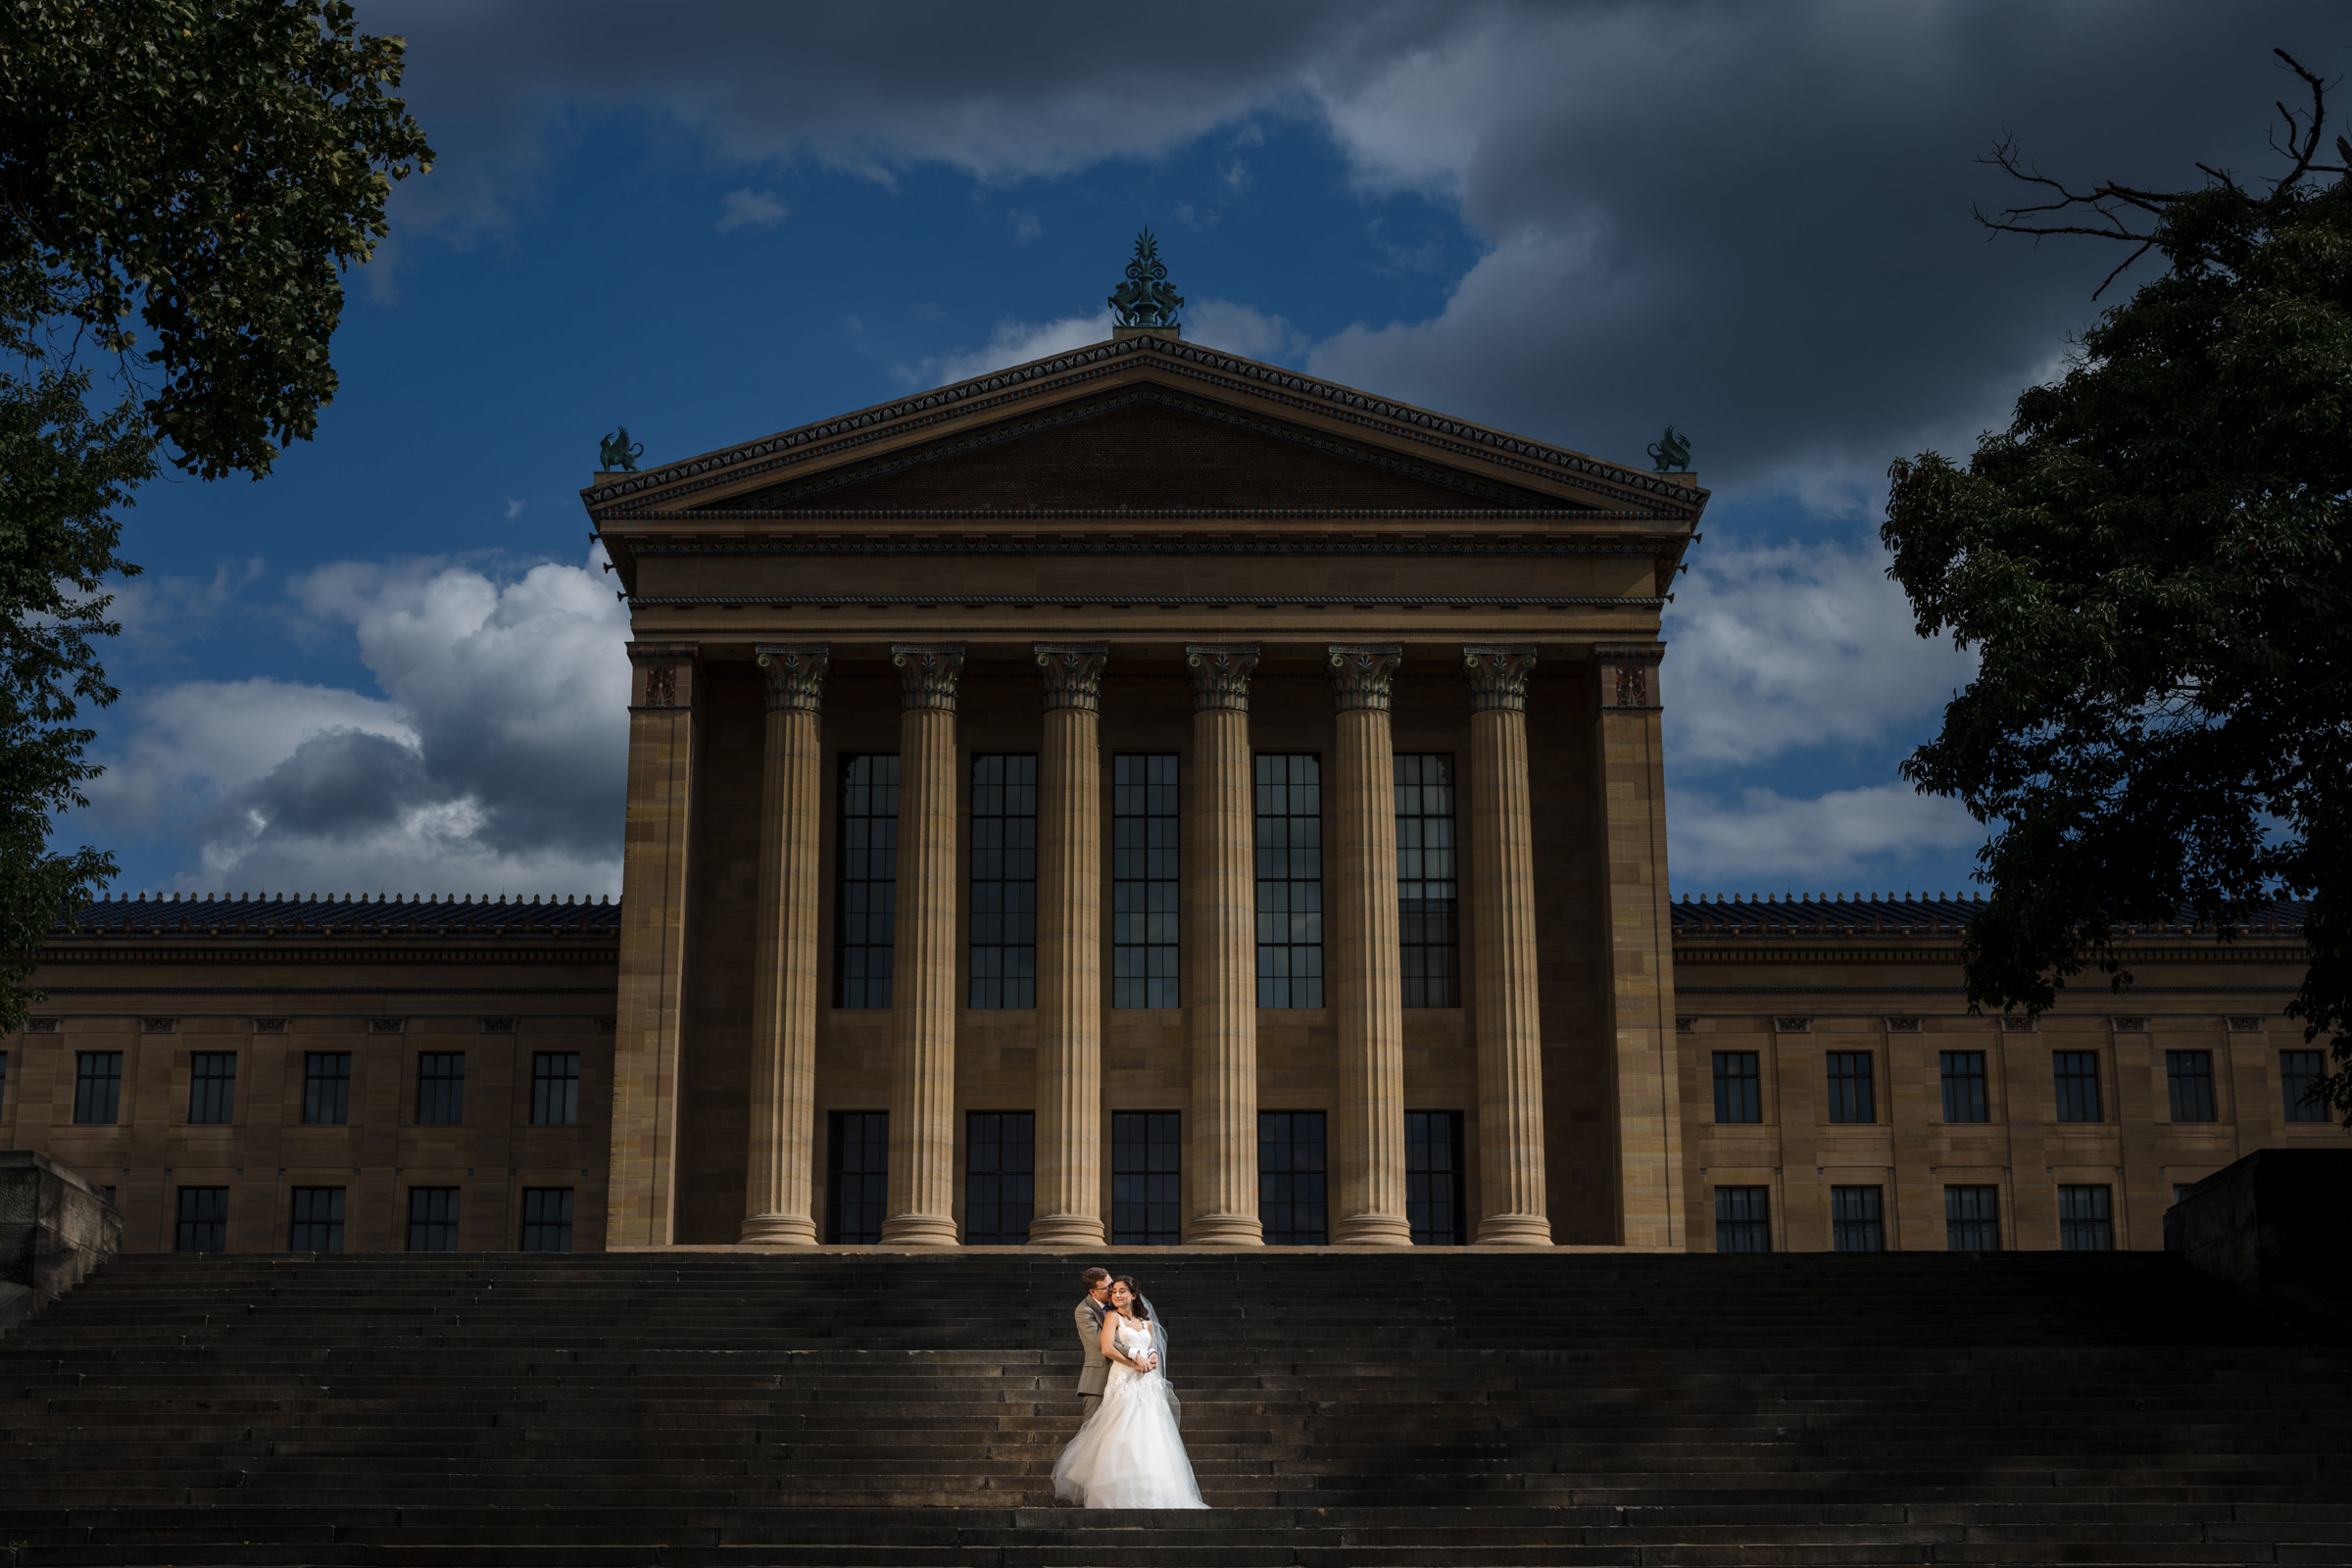 Bride and groom in front of classical architecture - Photo by Susan Stripling Photography